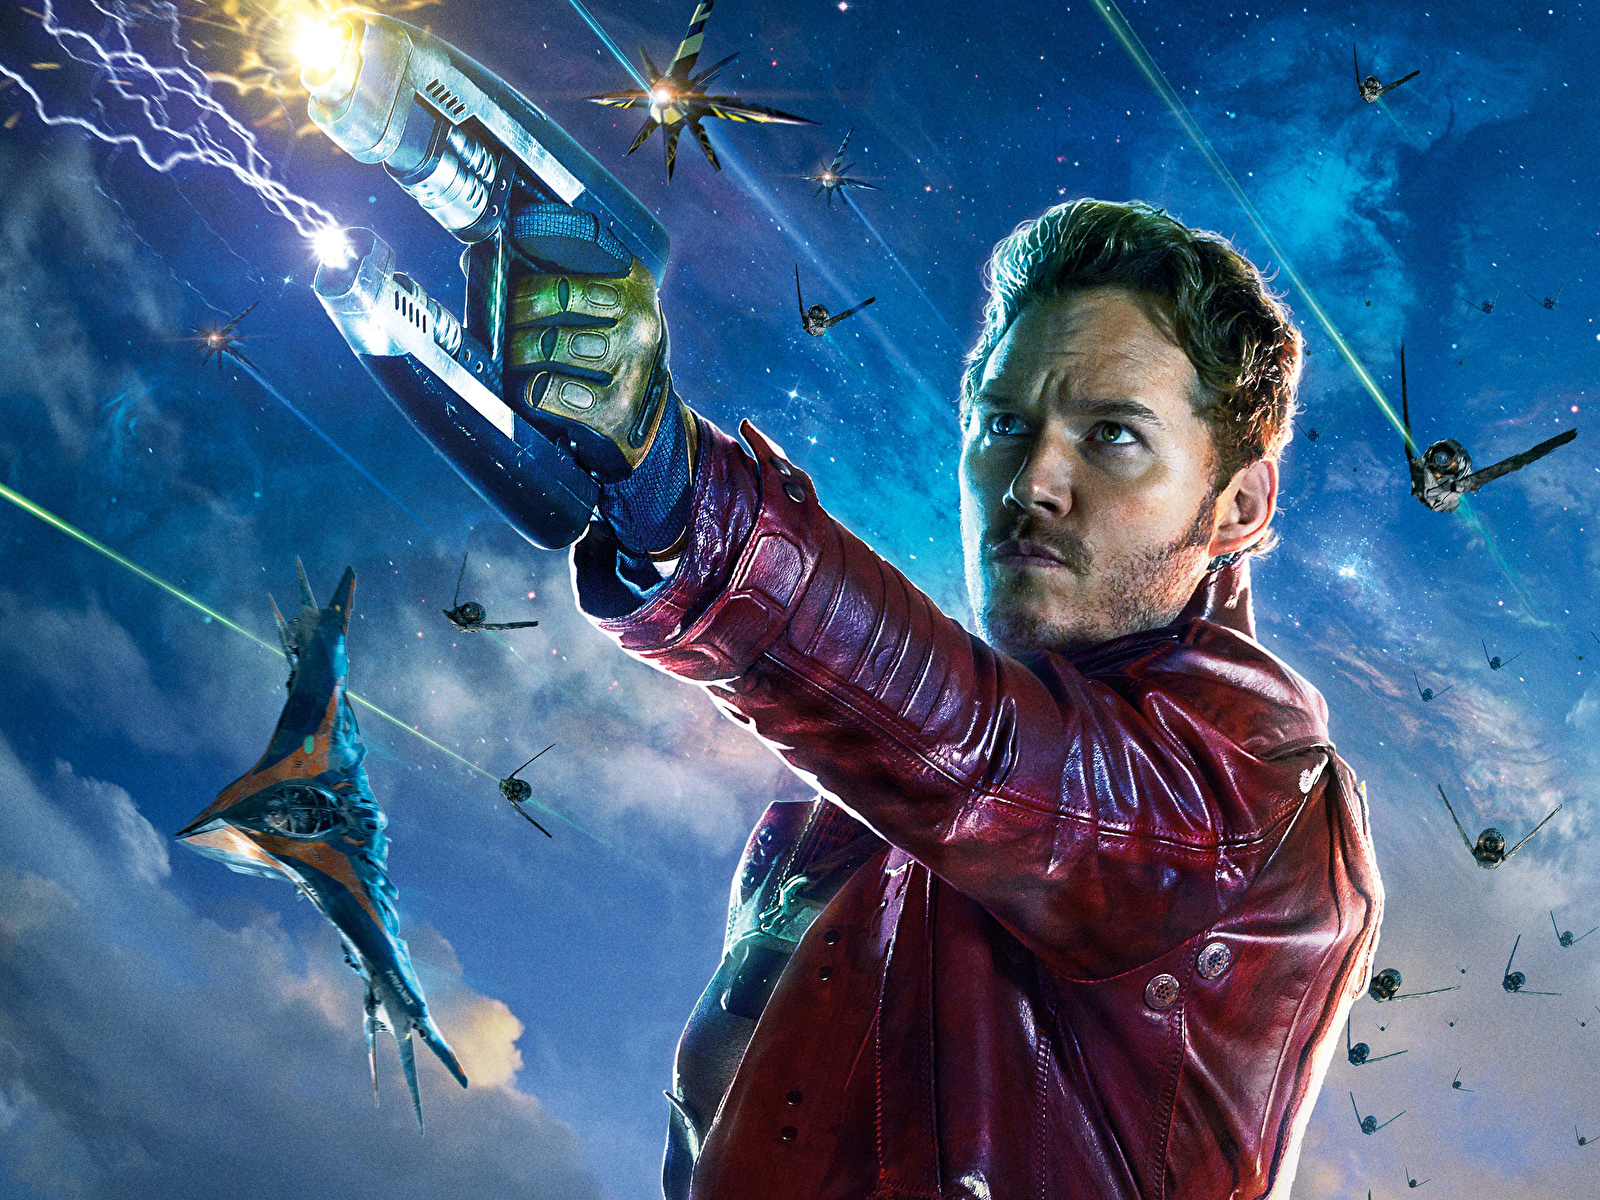 Wallpaper Man Warriors Guardians Of The Galaxy Star Lord